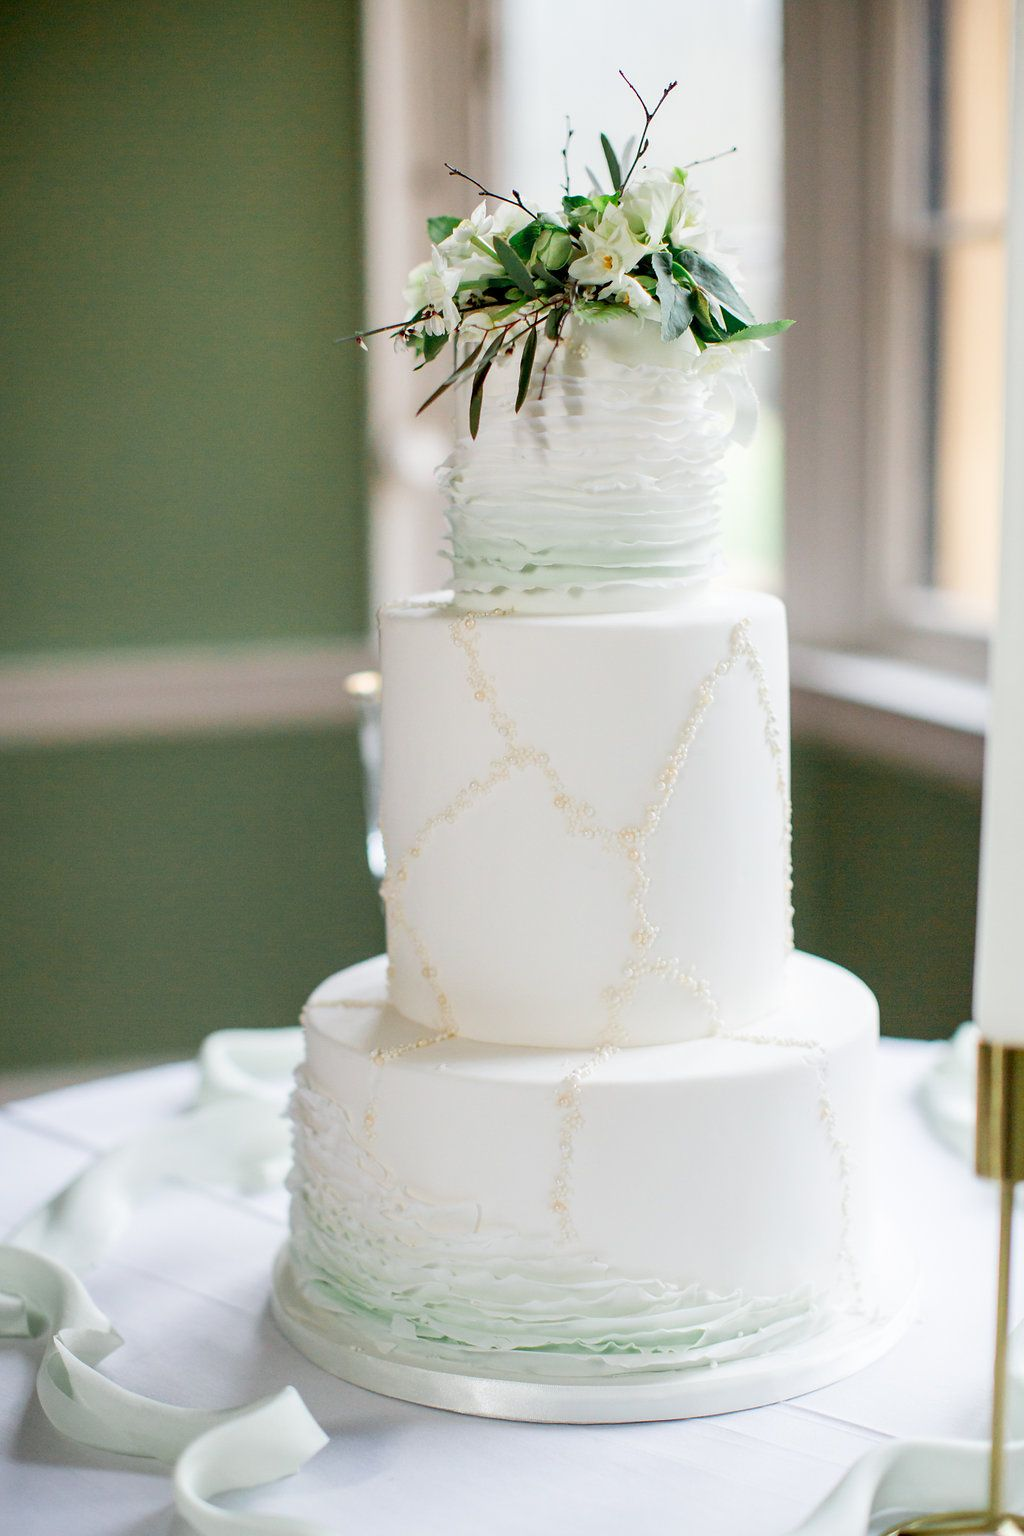 Adding a subtle hint of green into your wedding cake following the